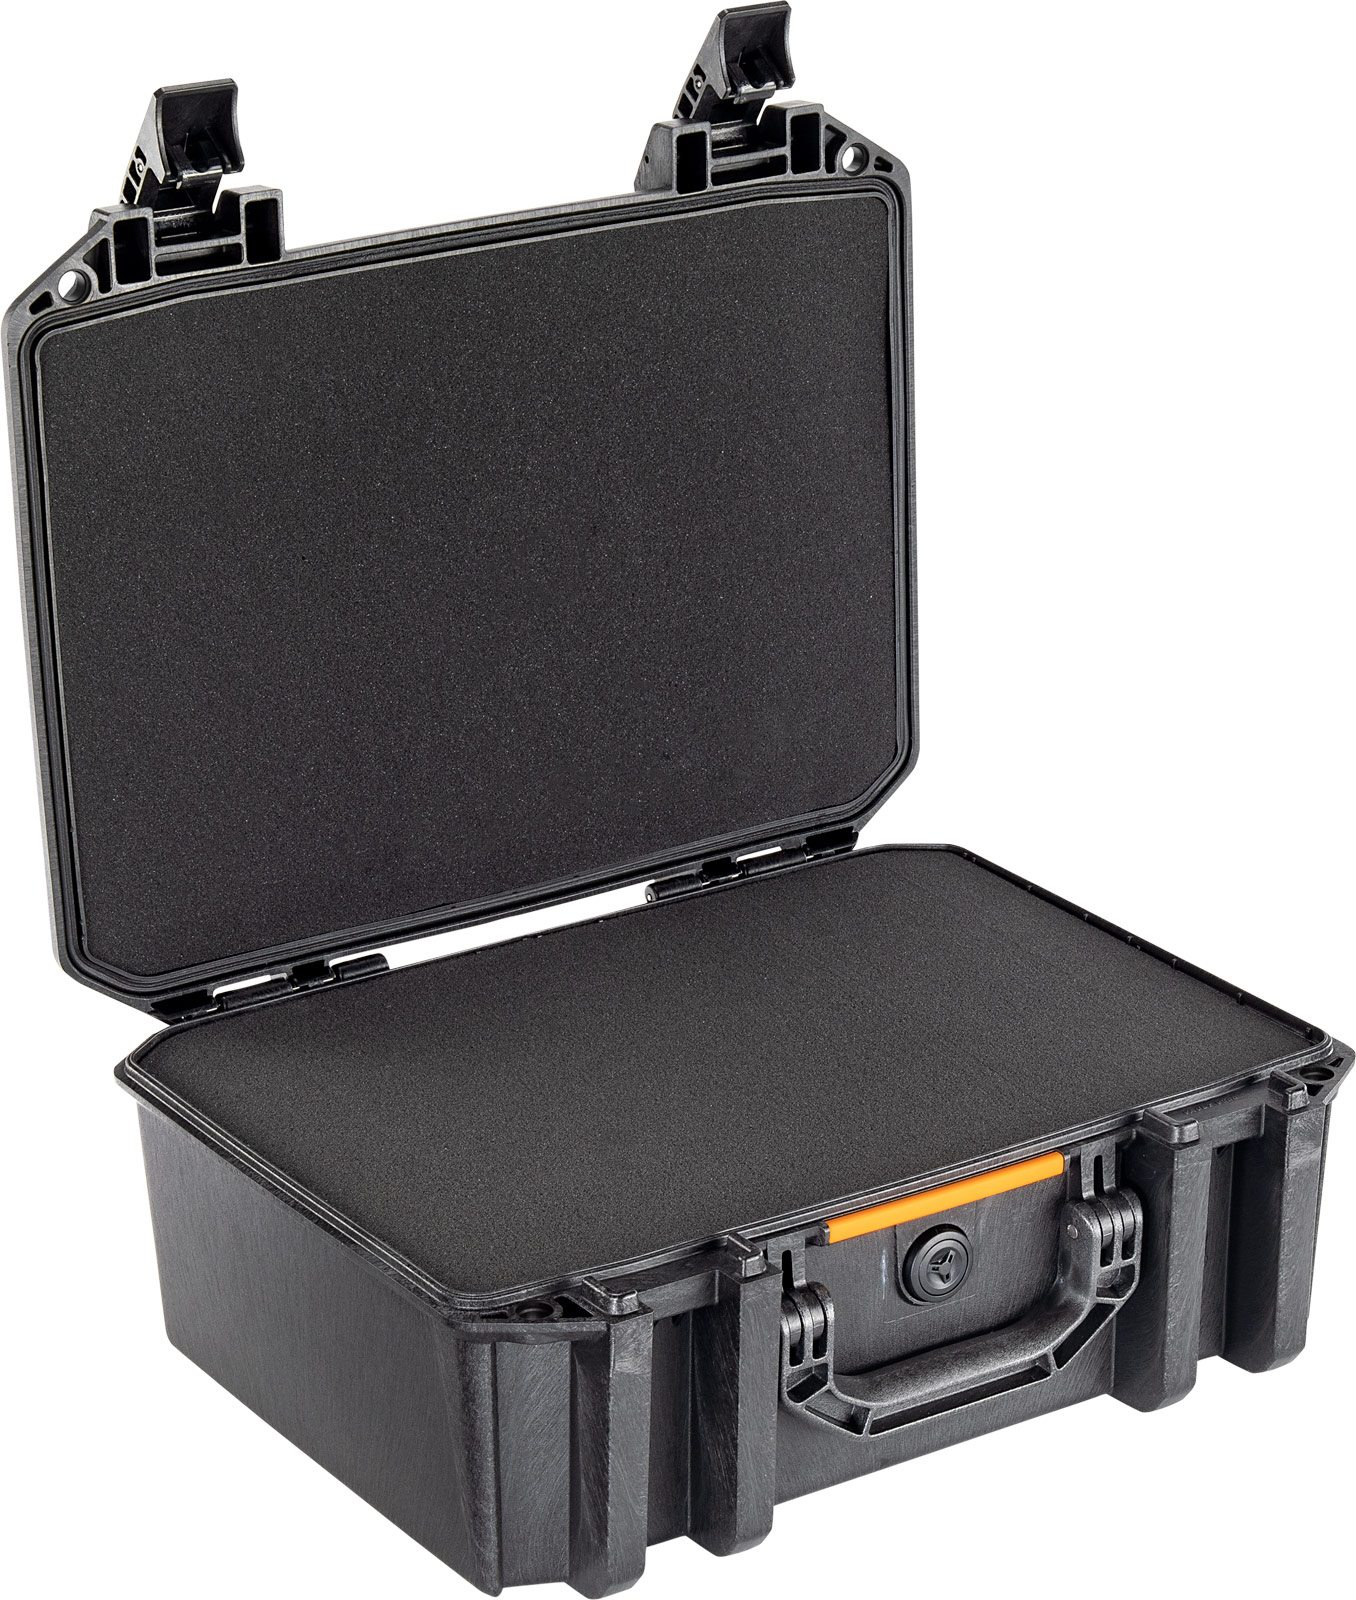 buy pelican vault v300 shop foam watertight case